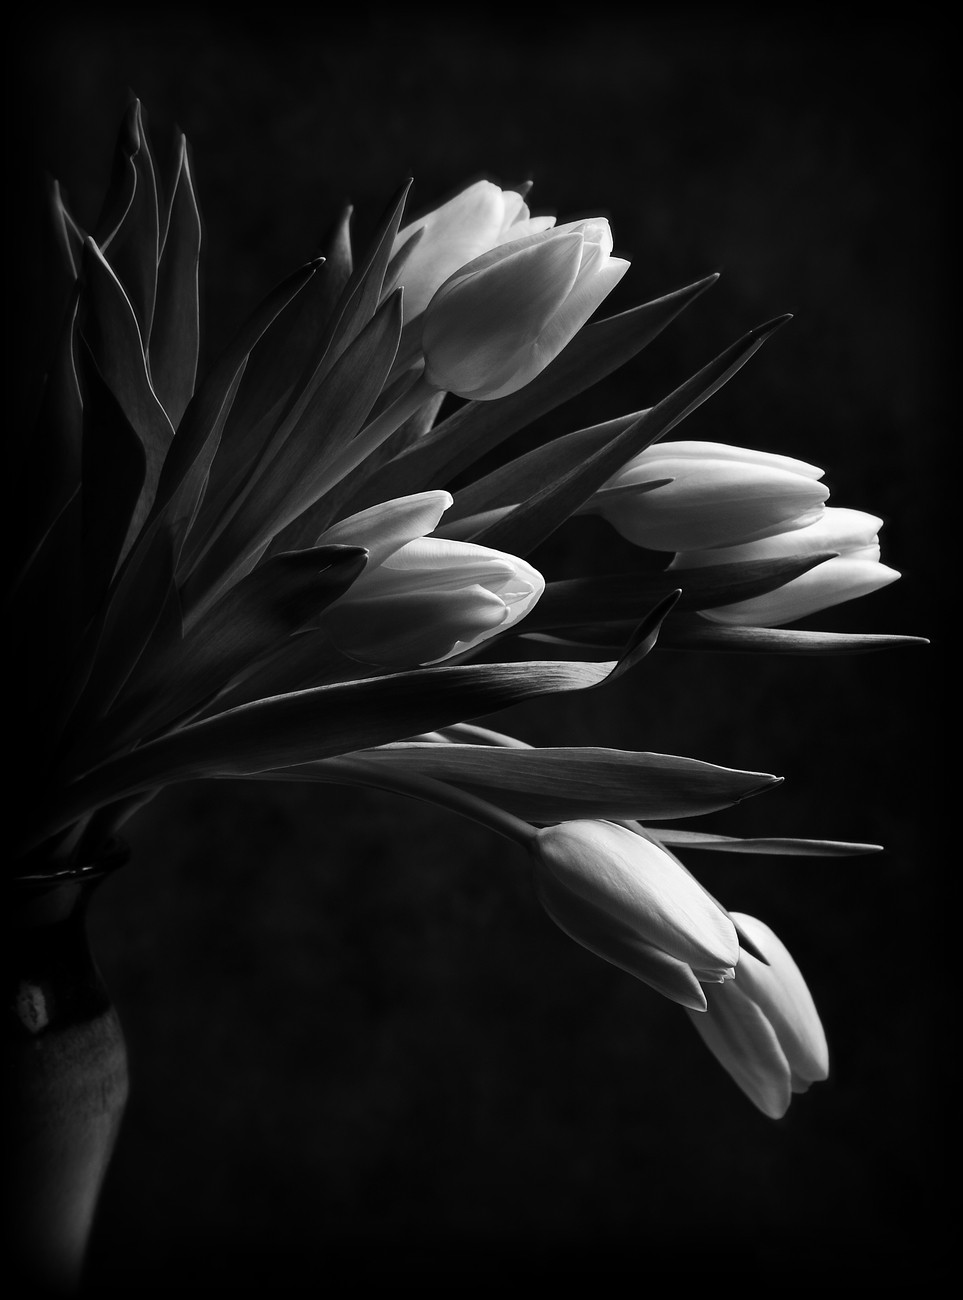 Black And White Flowers Enjoy The Photo Contest Winners Blog